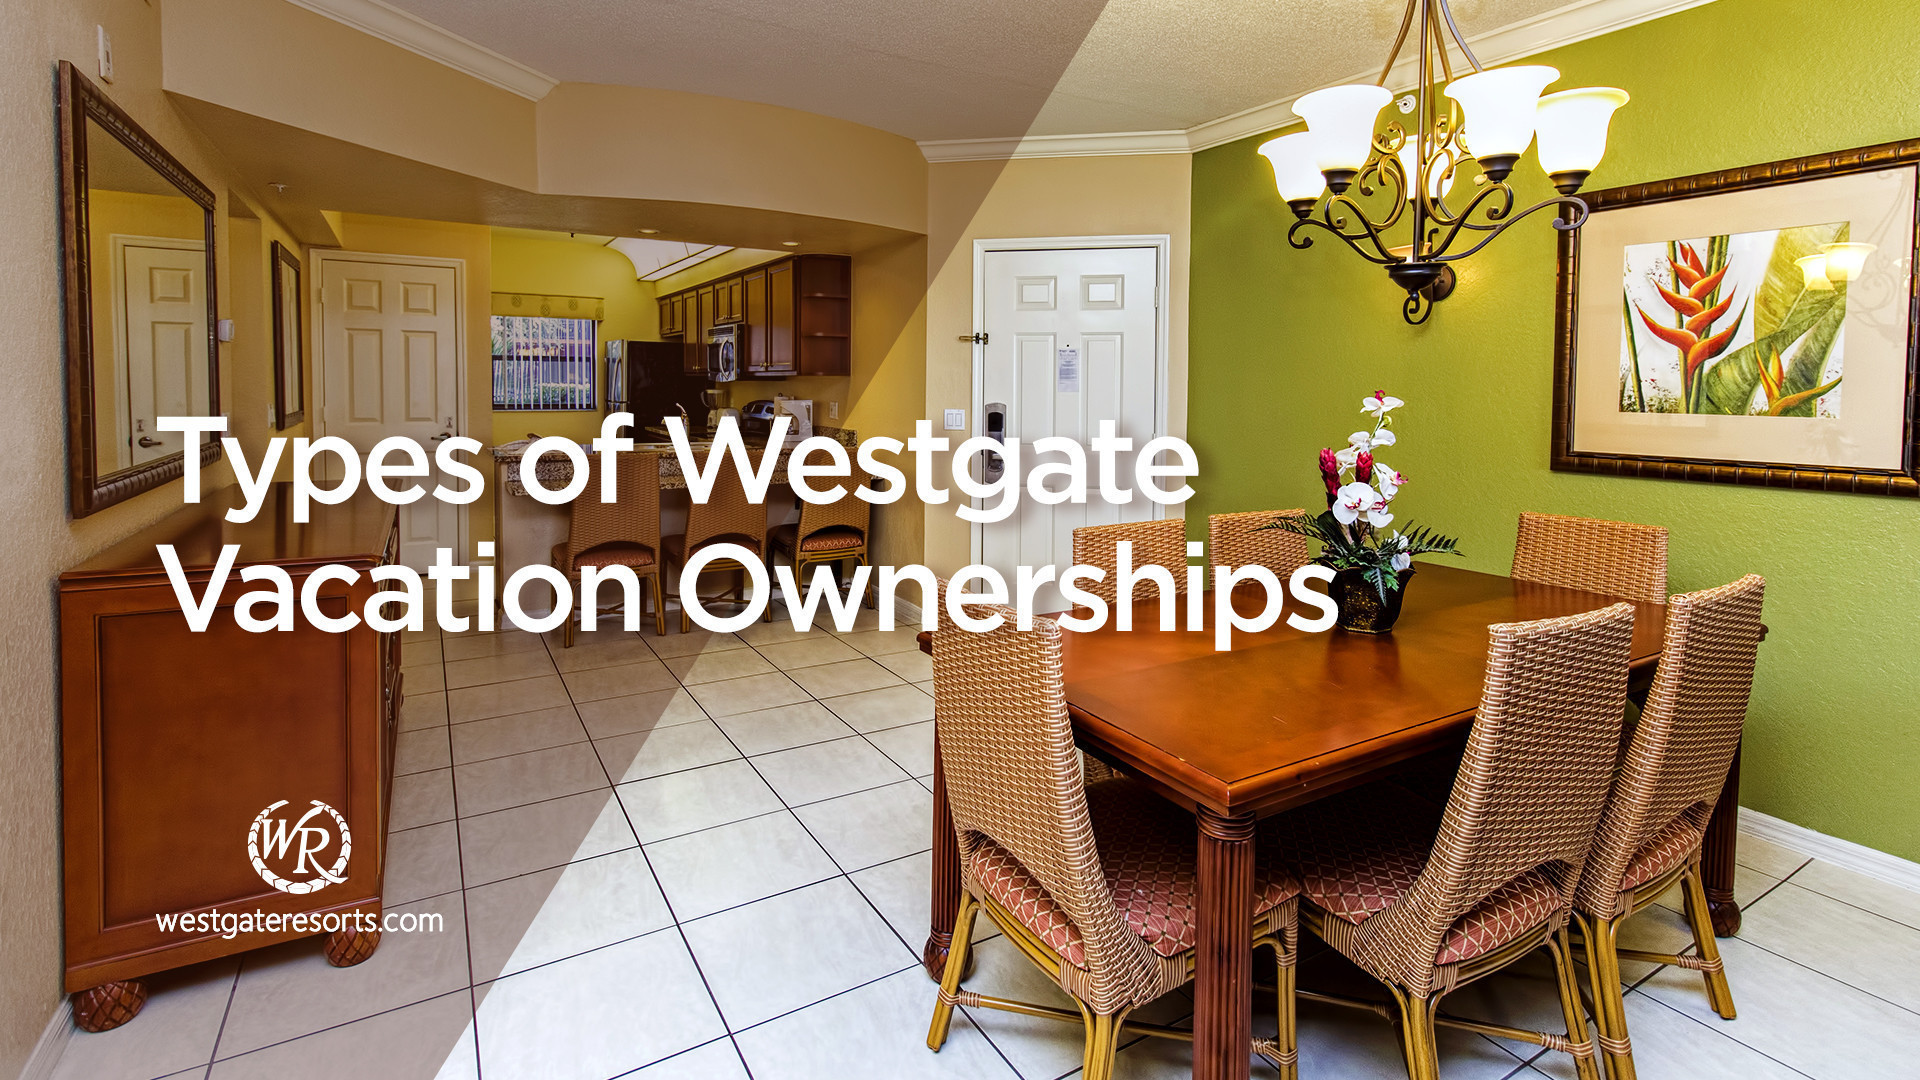 Types of Westgate Vacation Ownerships | Westgate Vacation Ownership | Westgate Timeshare